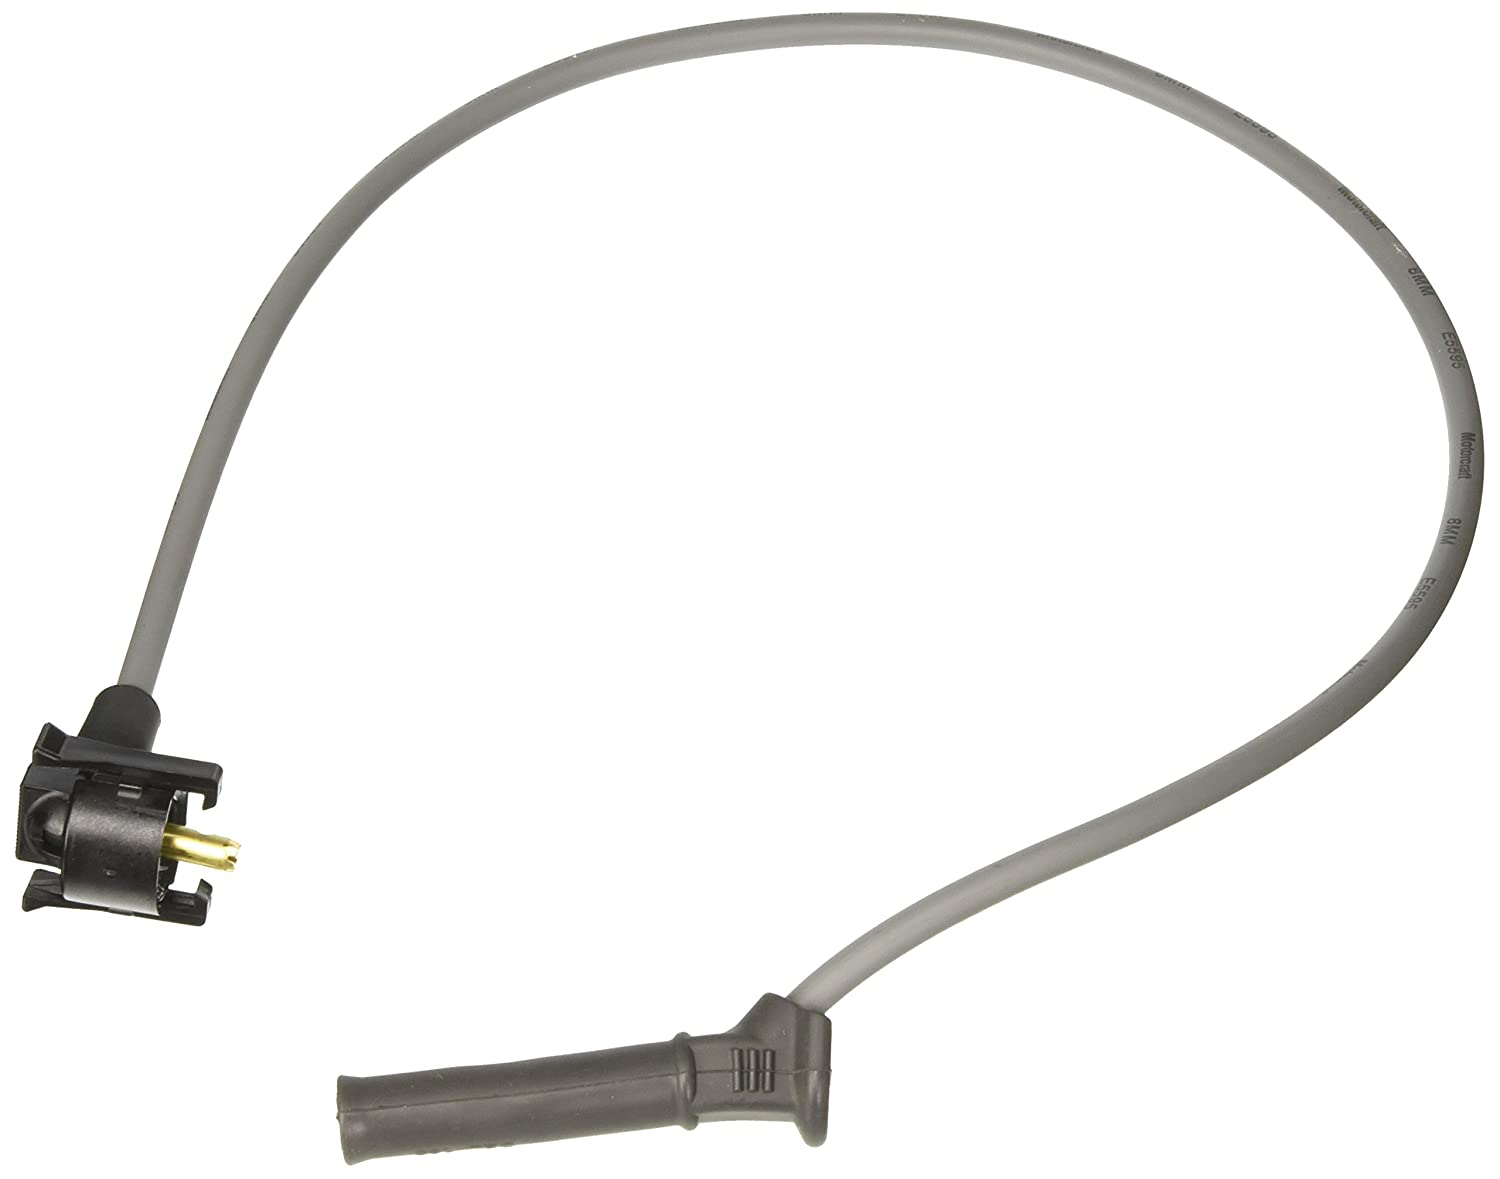 Motorcraft WR-6140 Spark Plug Single Lead Wire